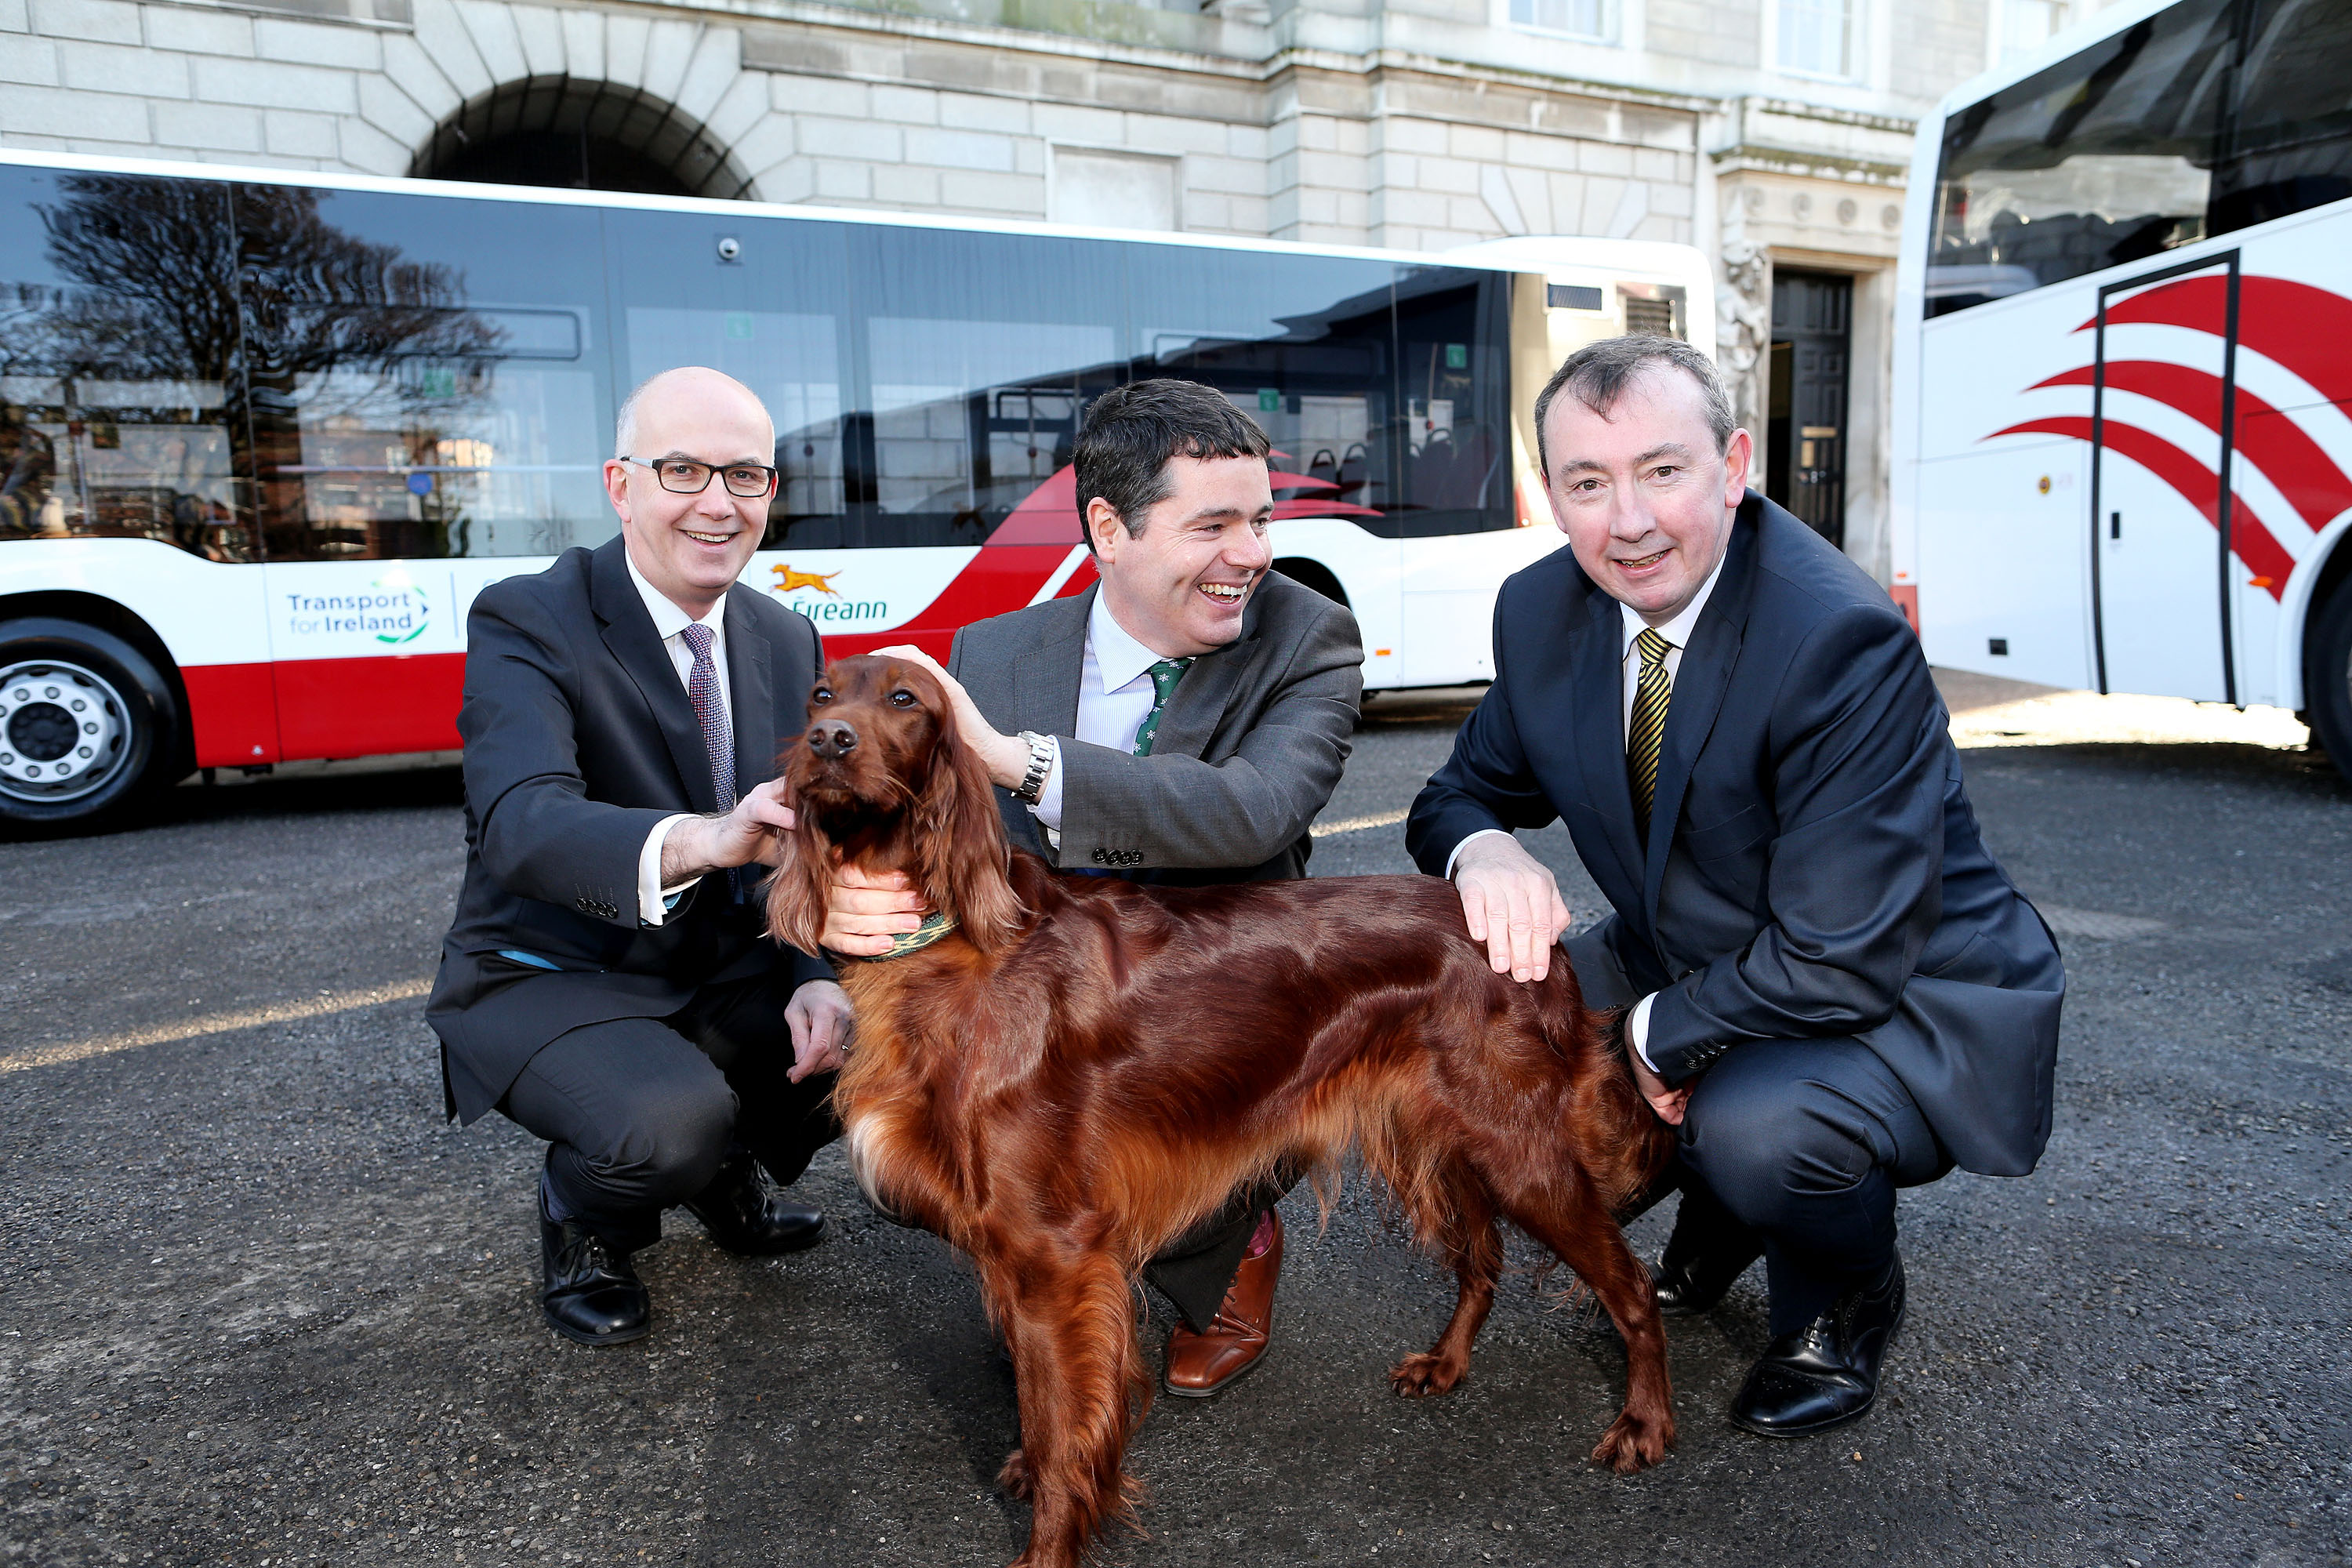 Transport For Ireland - Fleet of the Future: Over 100 new buses for